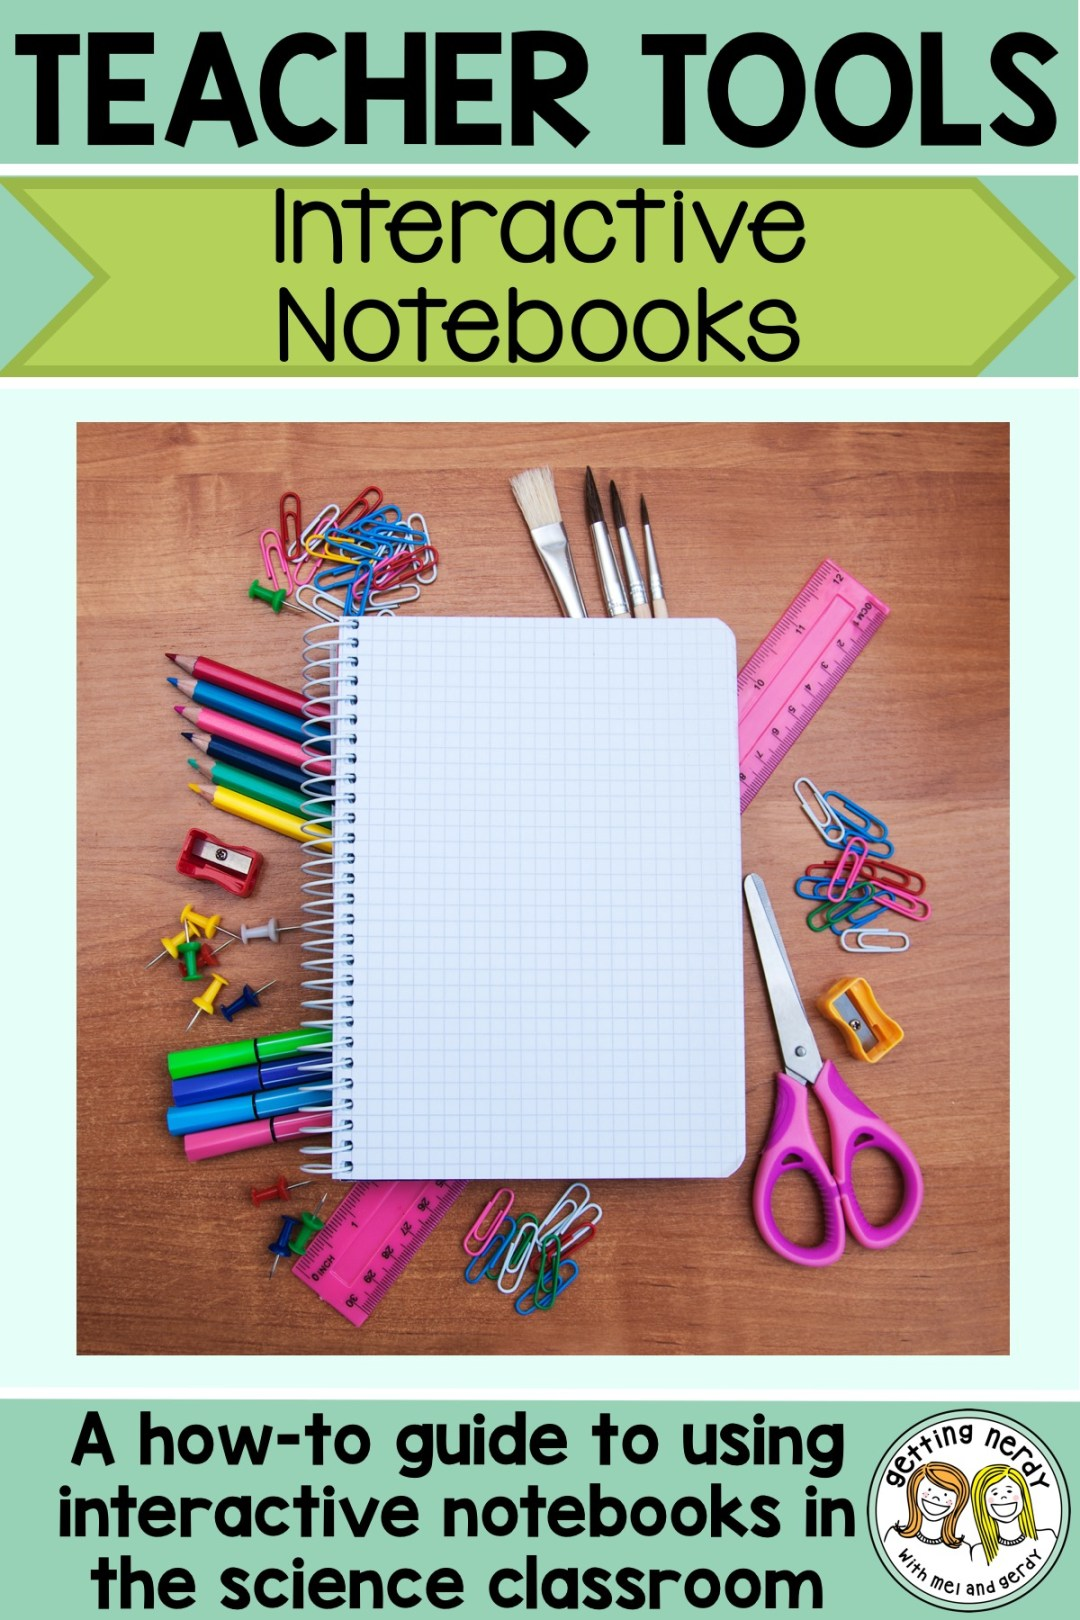 Read this beginner's guide to setting up successful Interactive Notebooks  for science - ISN, INB, whatever you call them - we've got tips and tools for you! #gettingnerdyscience #INB #ISN #interactivenotebook